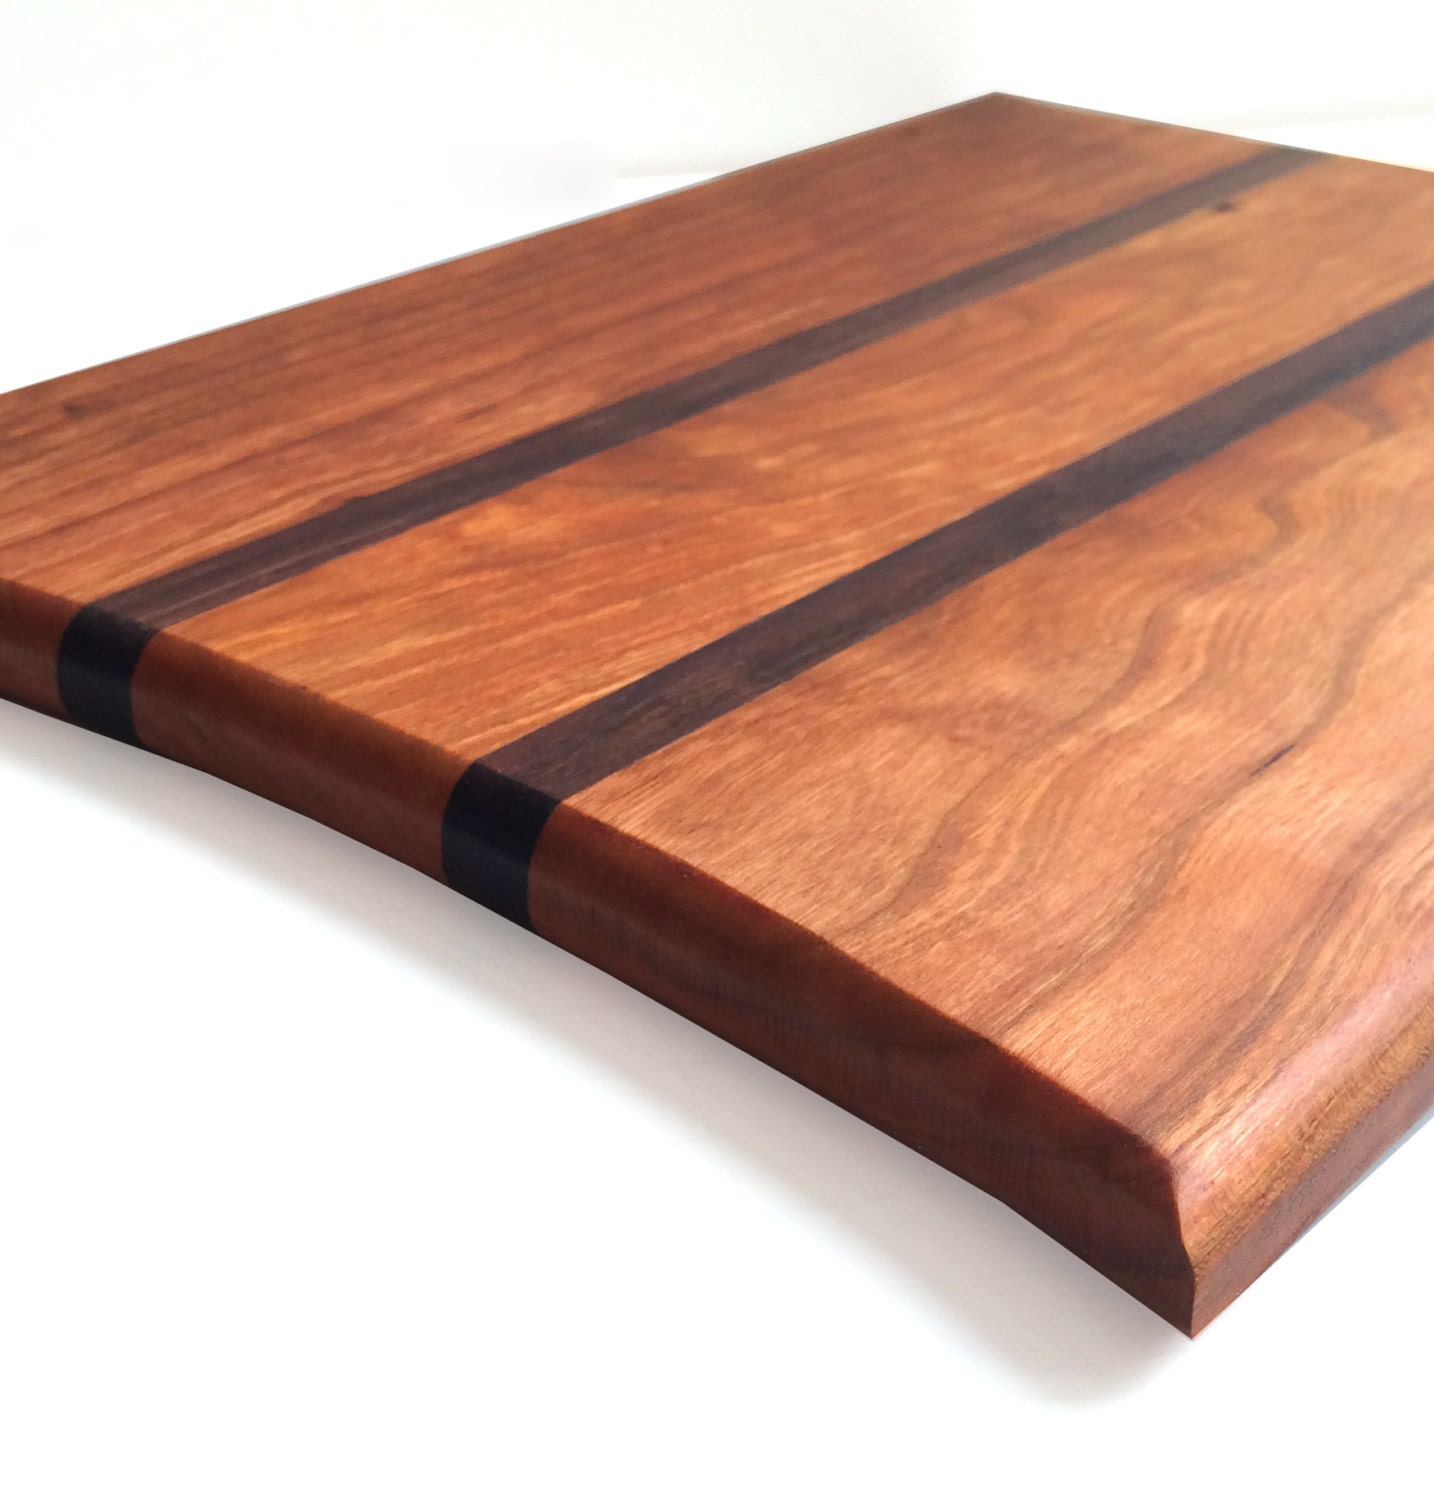 Wood Cutting Board Contemporary Cherry Walnut Cutting Board